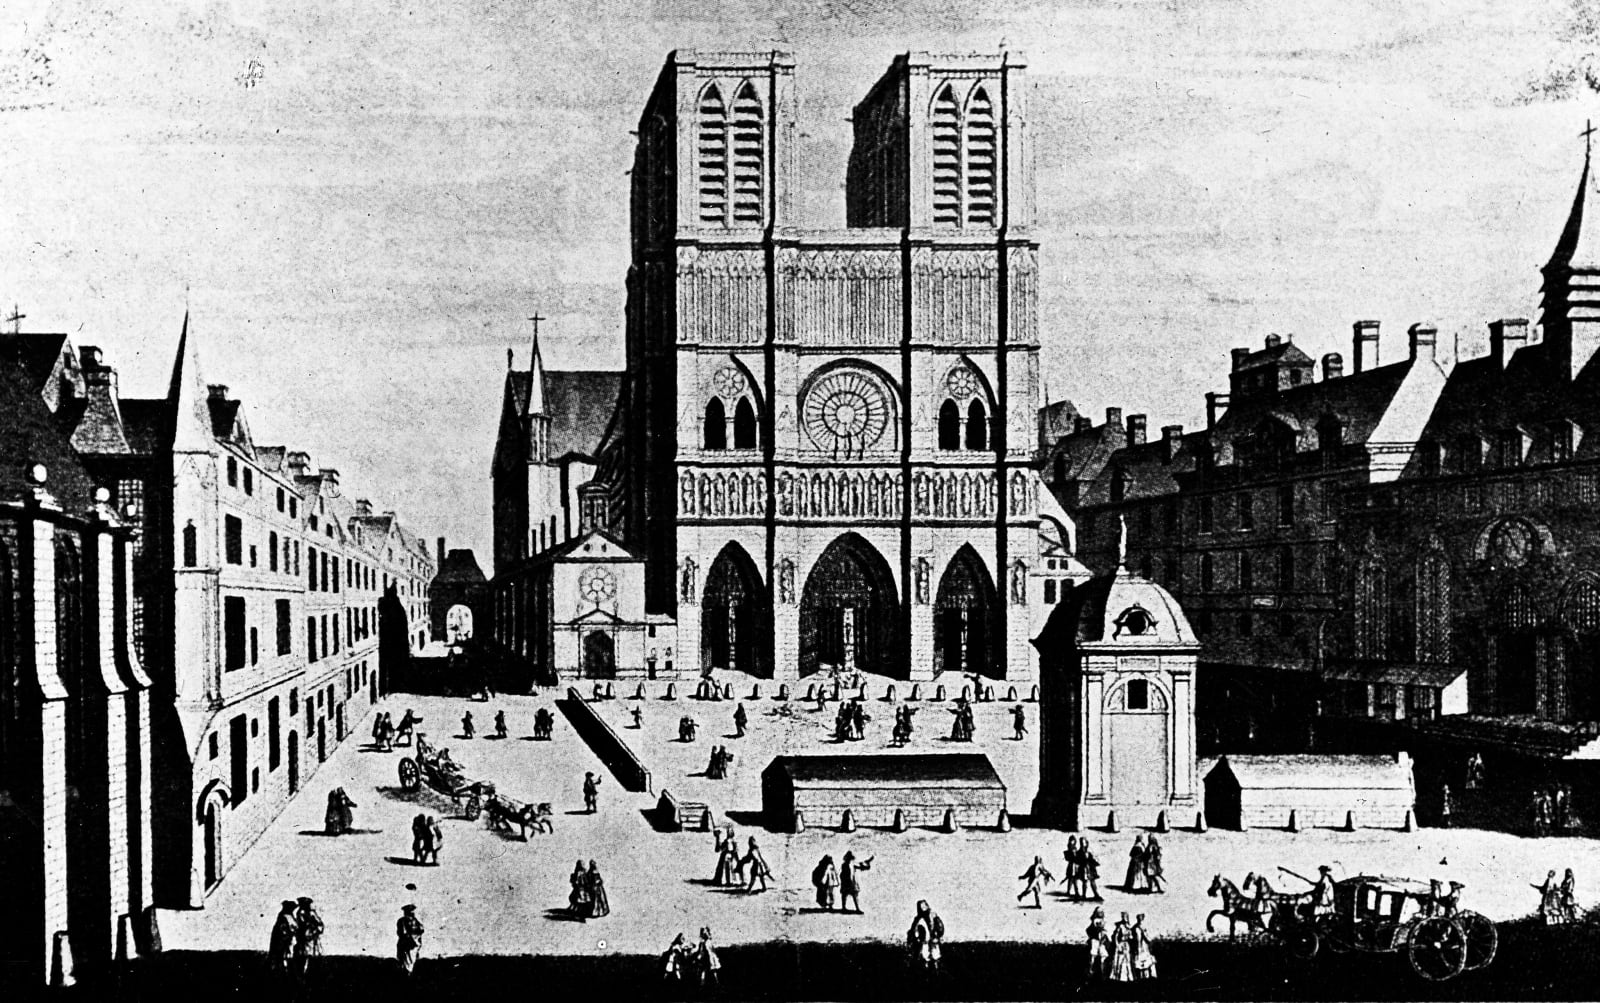 Where she wed: Notre Dame, Paris